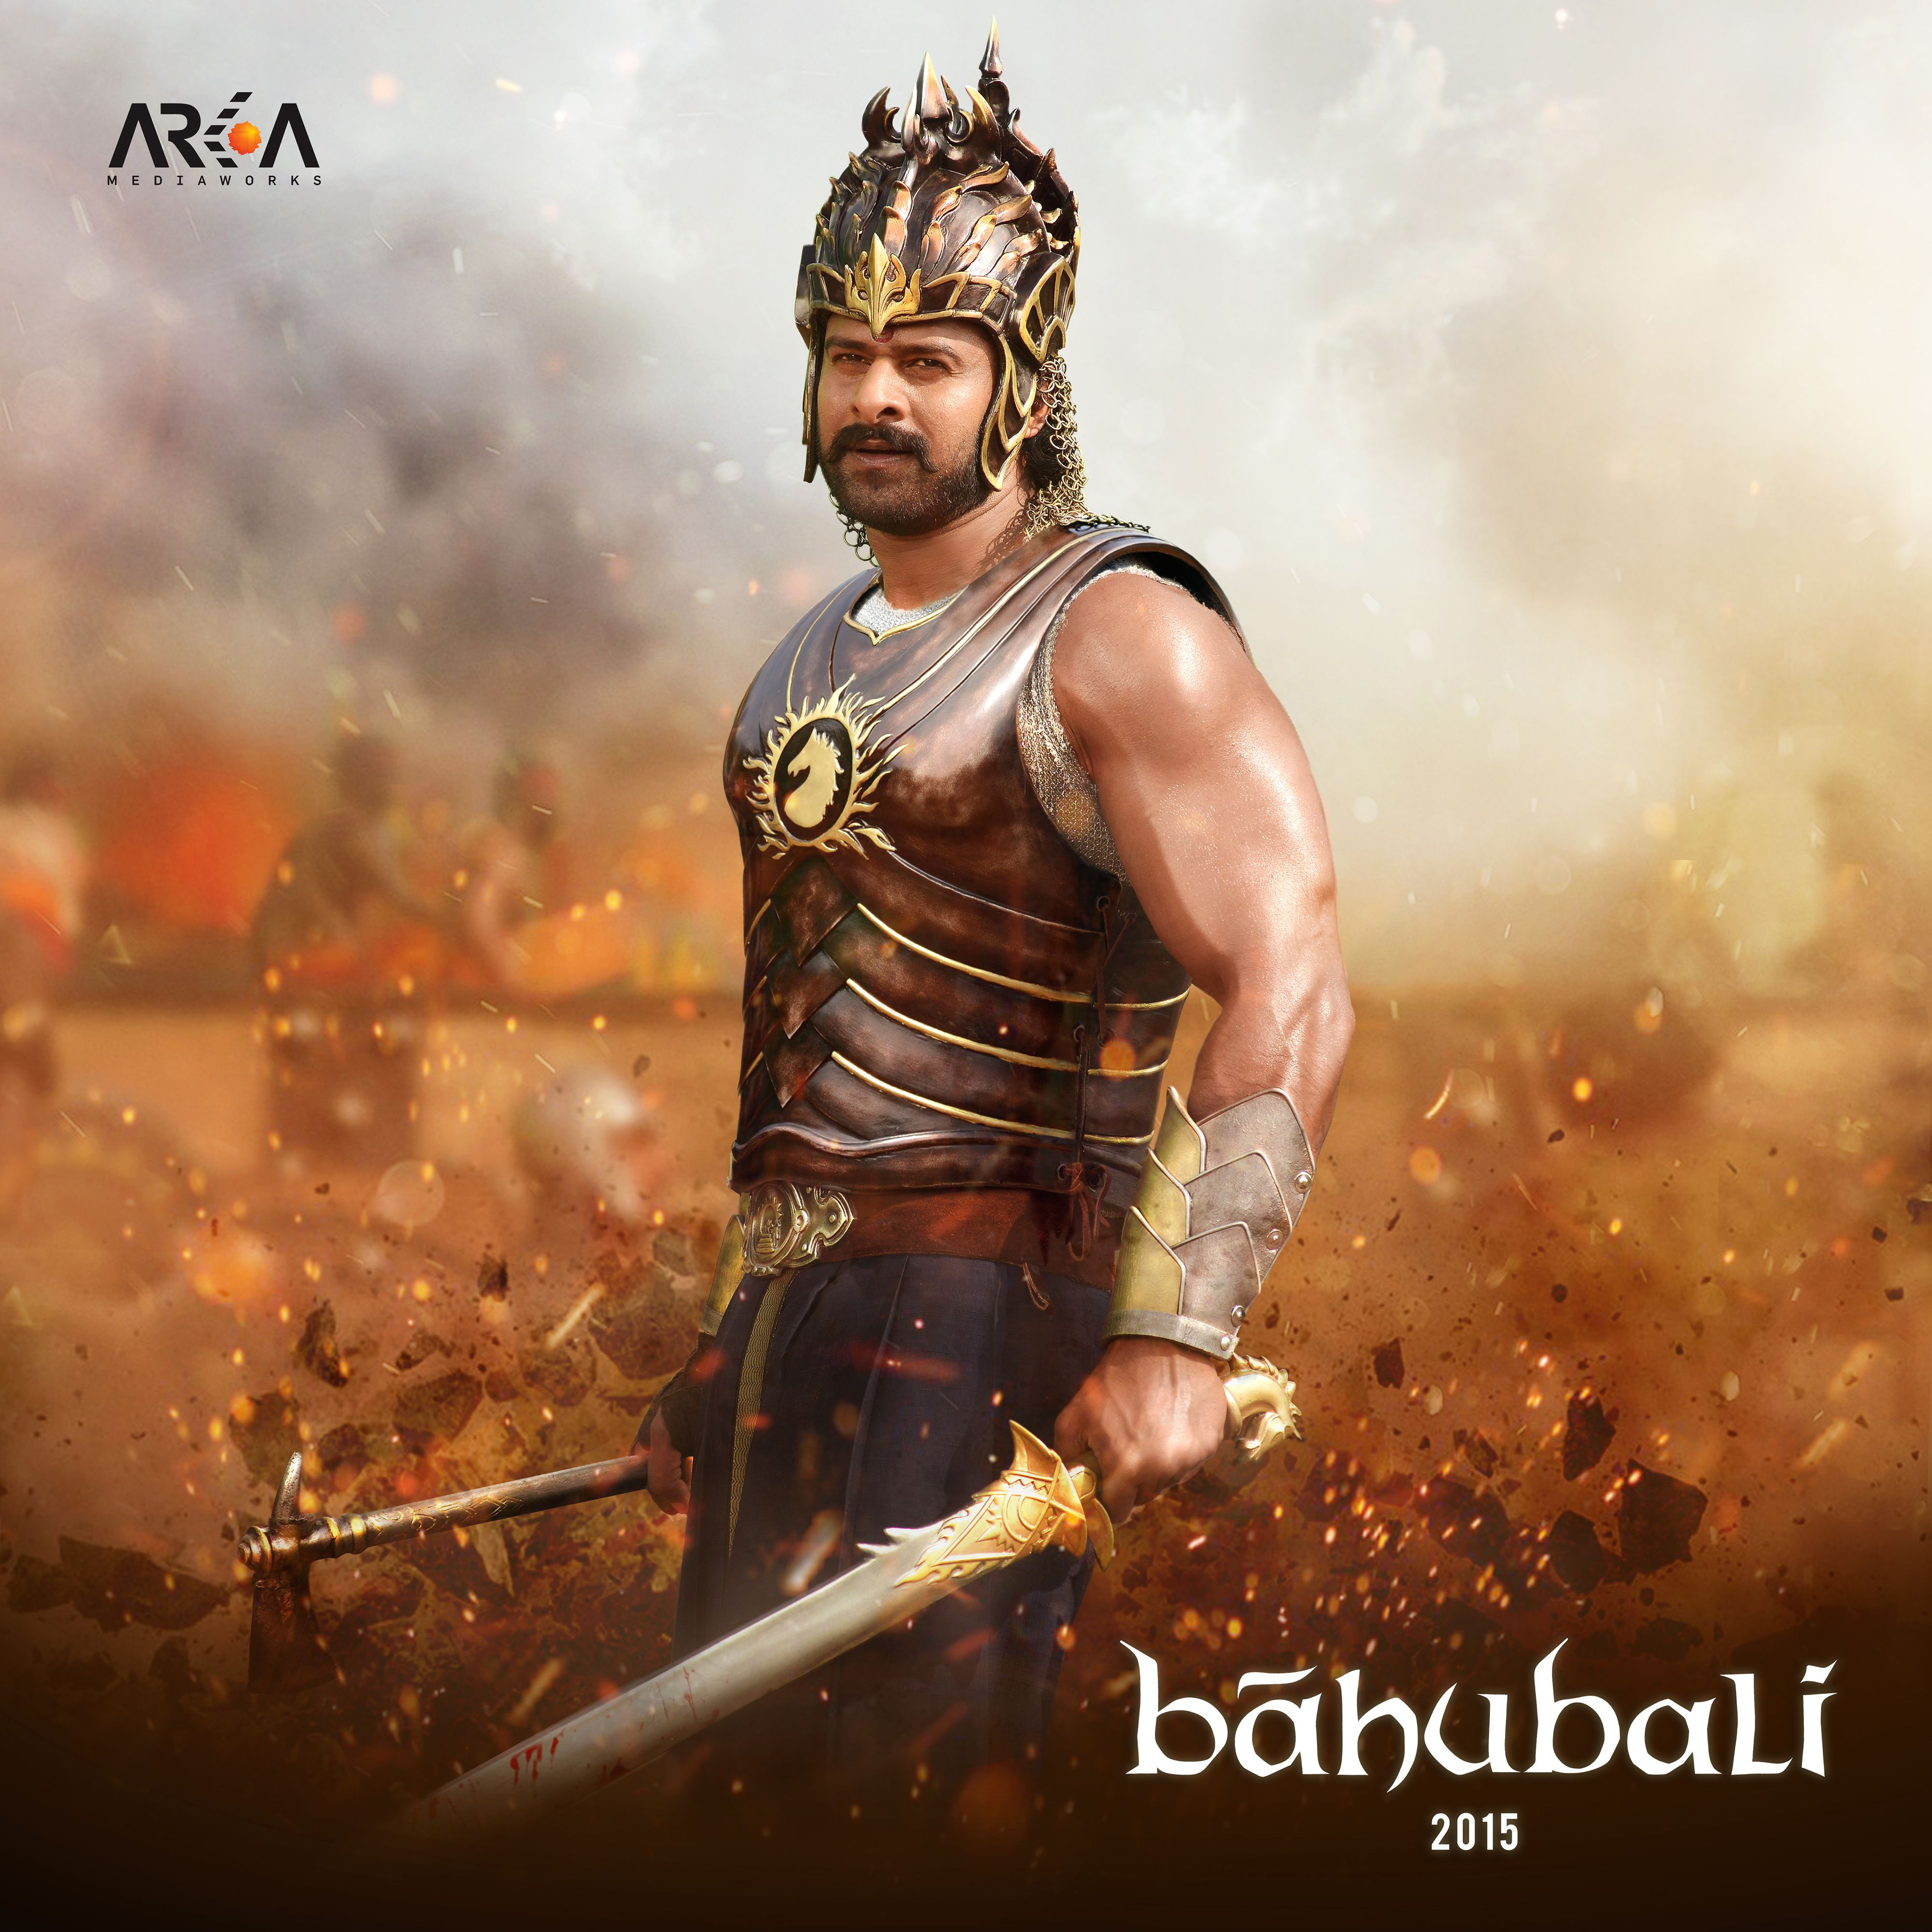 prabhas as baahubali (english) | prabhas | pinterest | english